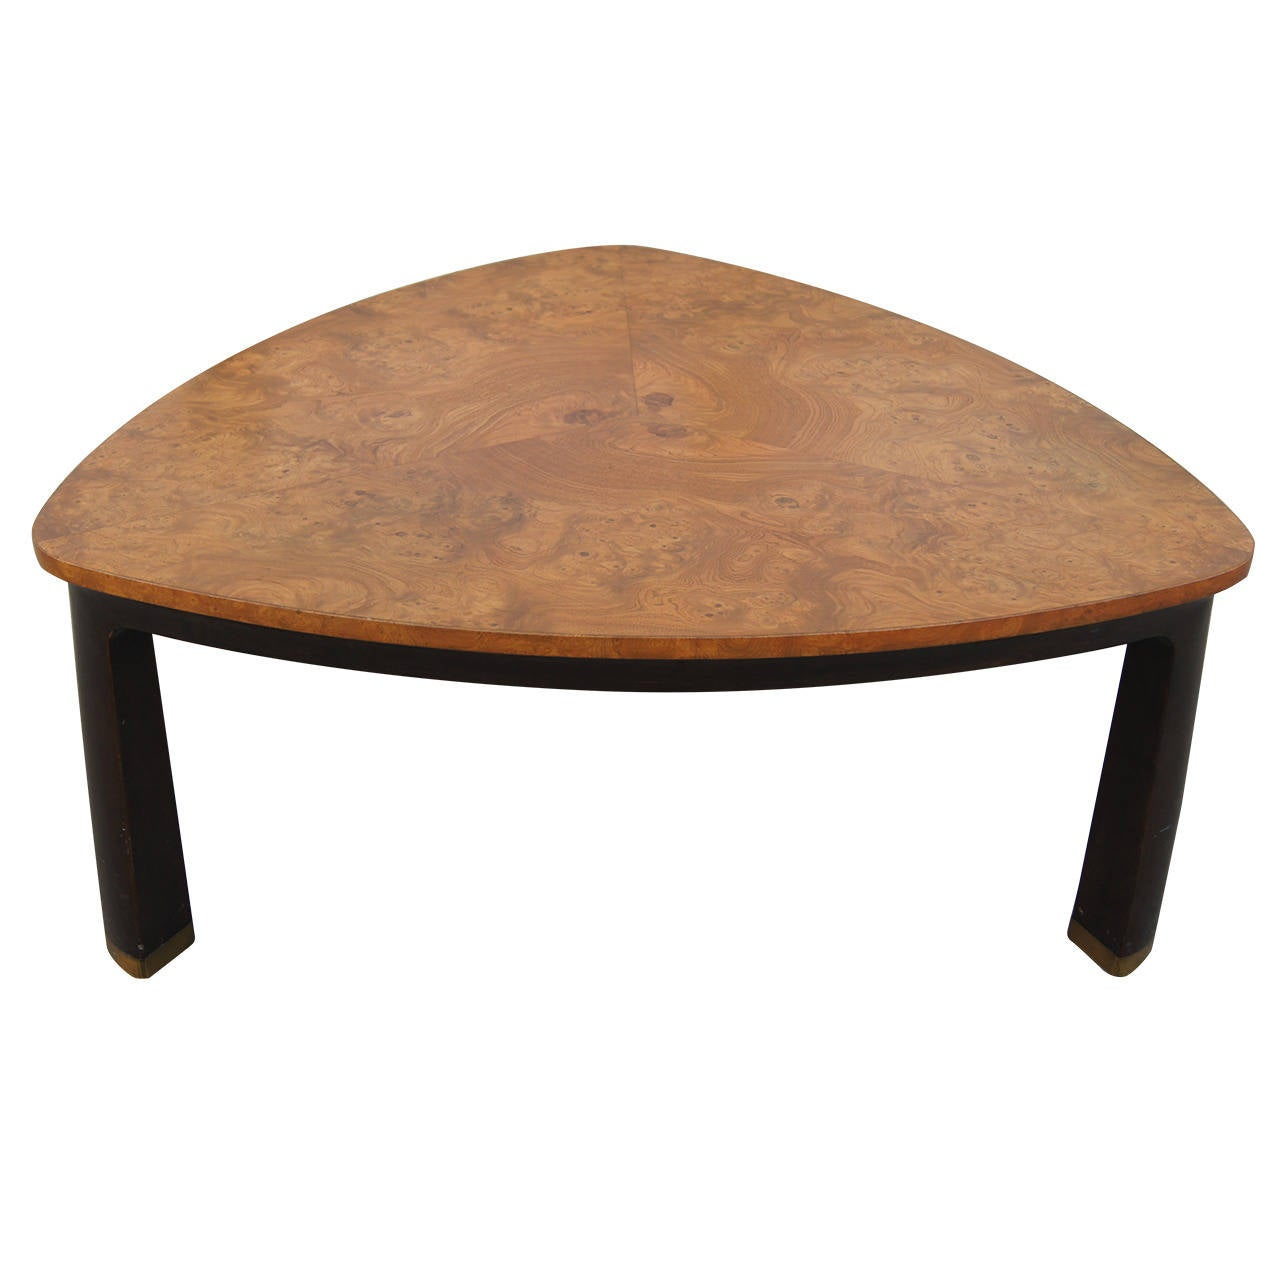 Triangular Burl Wood Coffee Table By Edward Wormley For Dunbar At 1stdibs